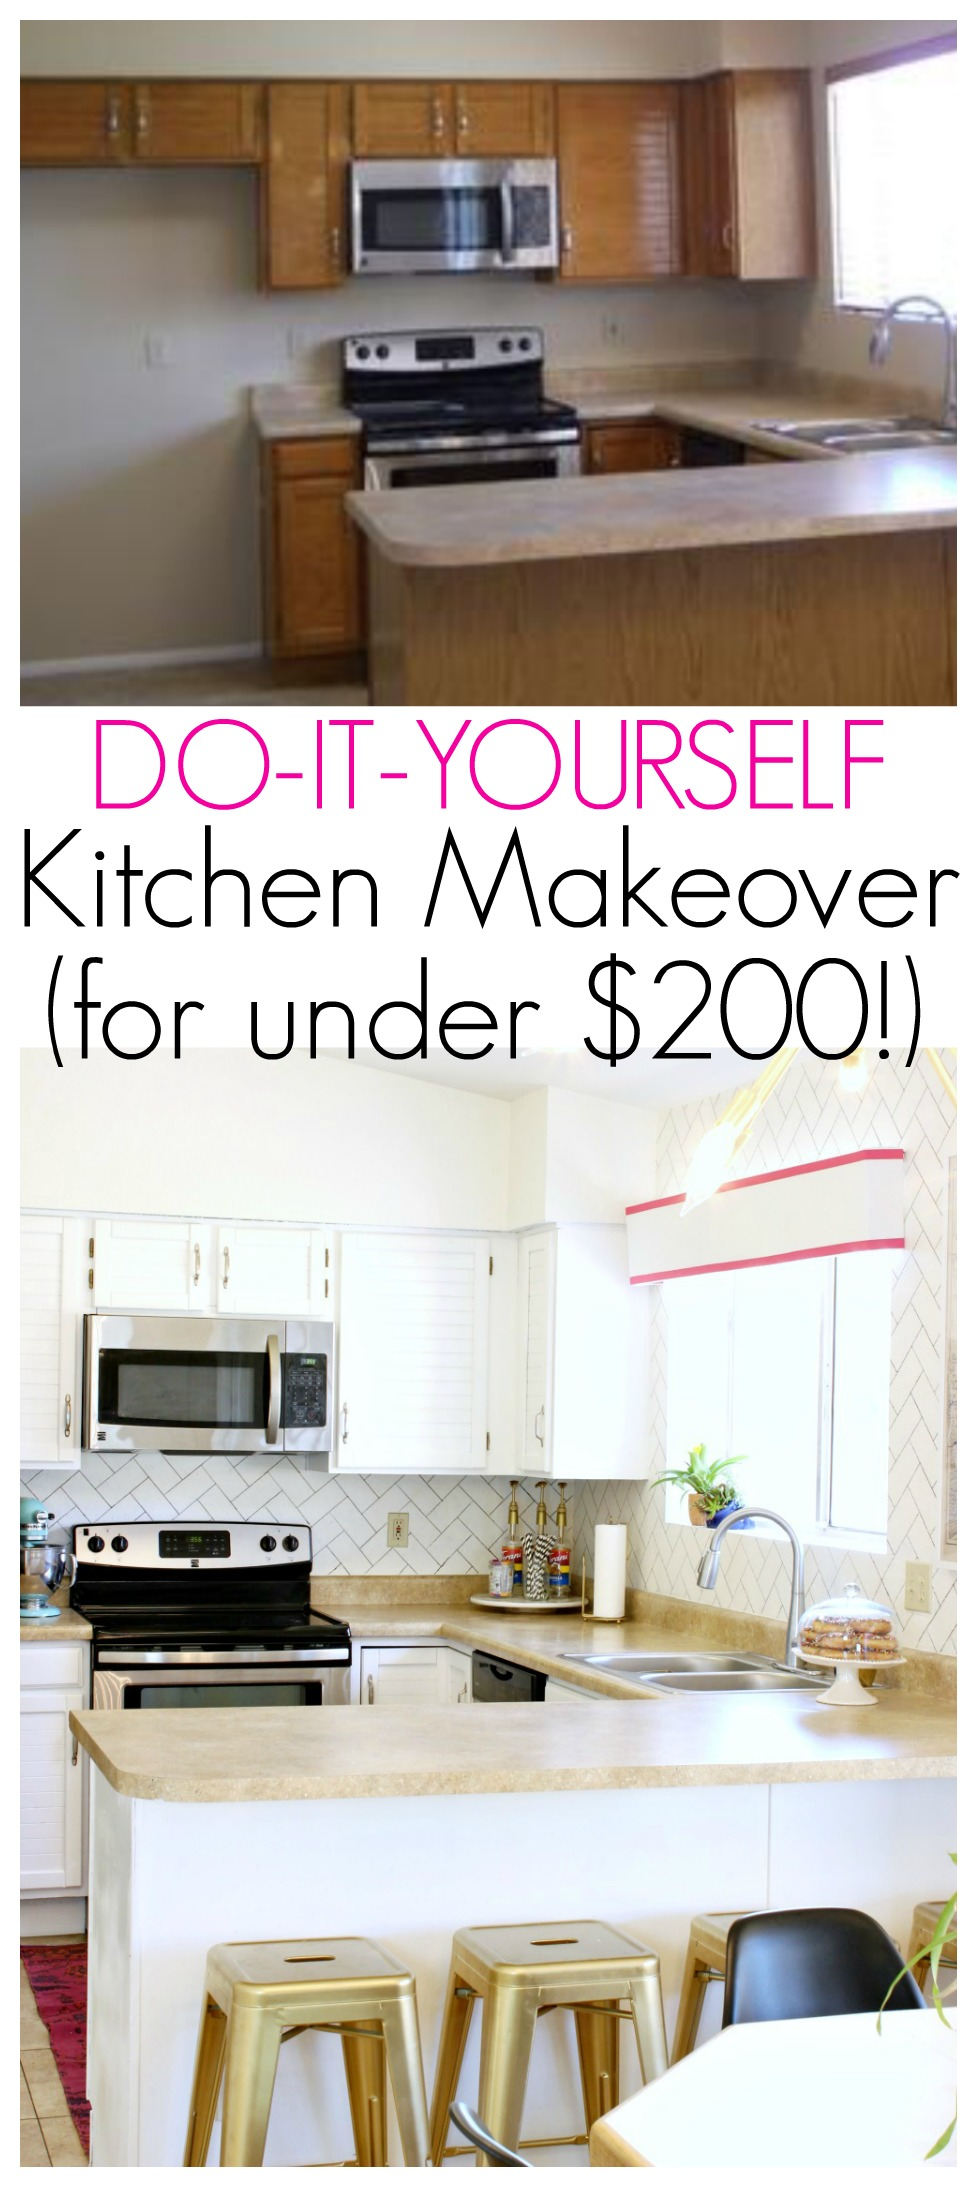 DIY Kitchen Makeover for under $200 - Click for more!